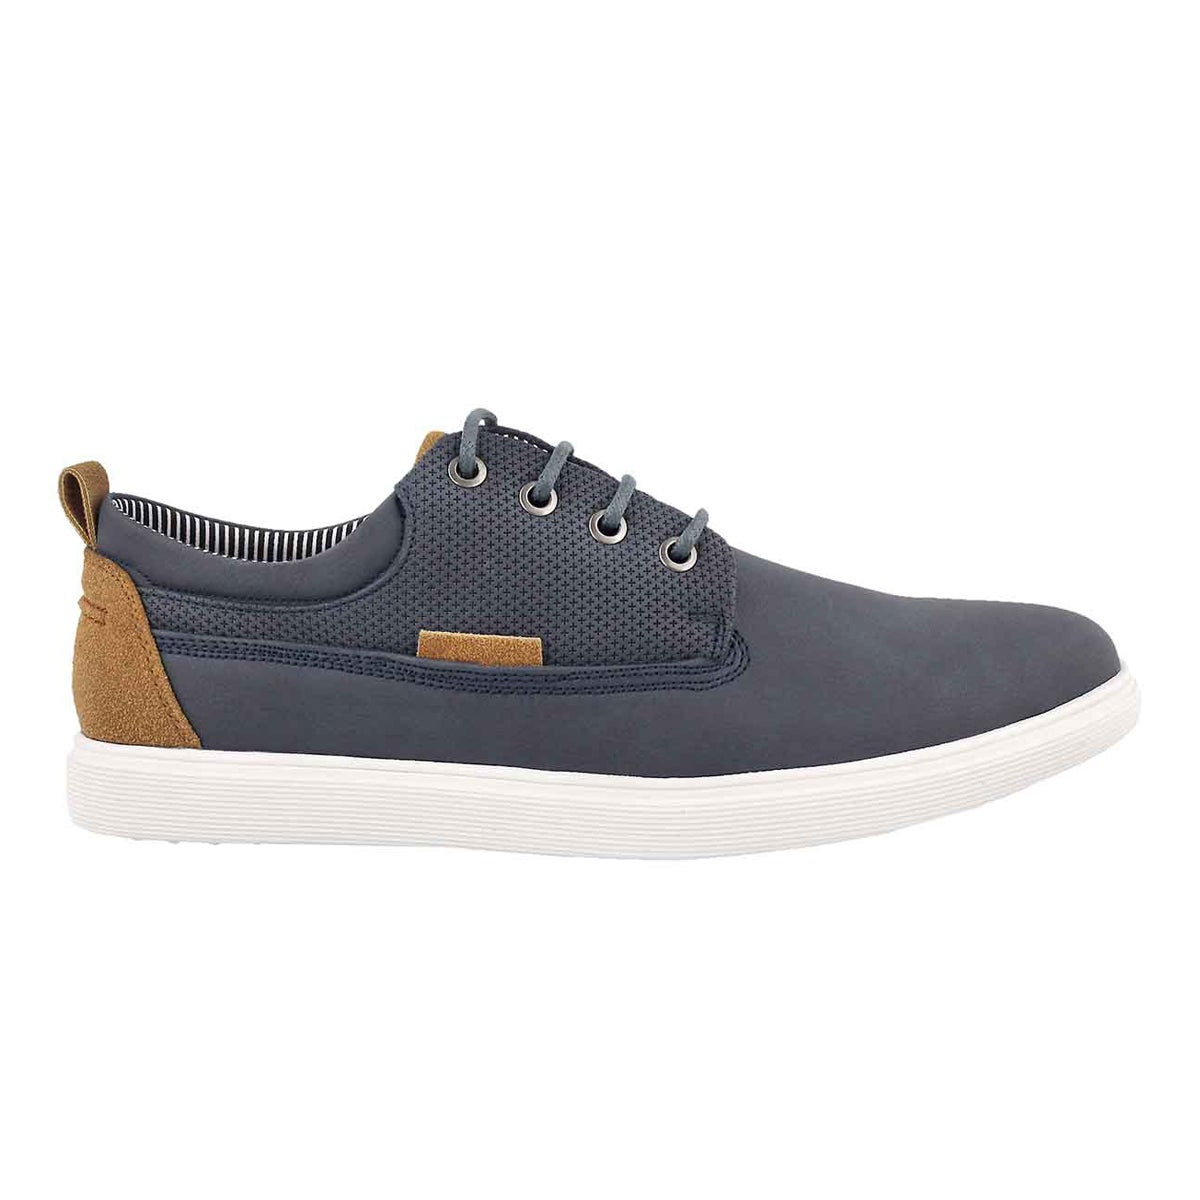 Mns Rangle navy lace up casual oxford